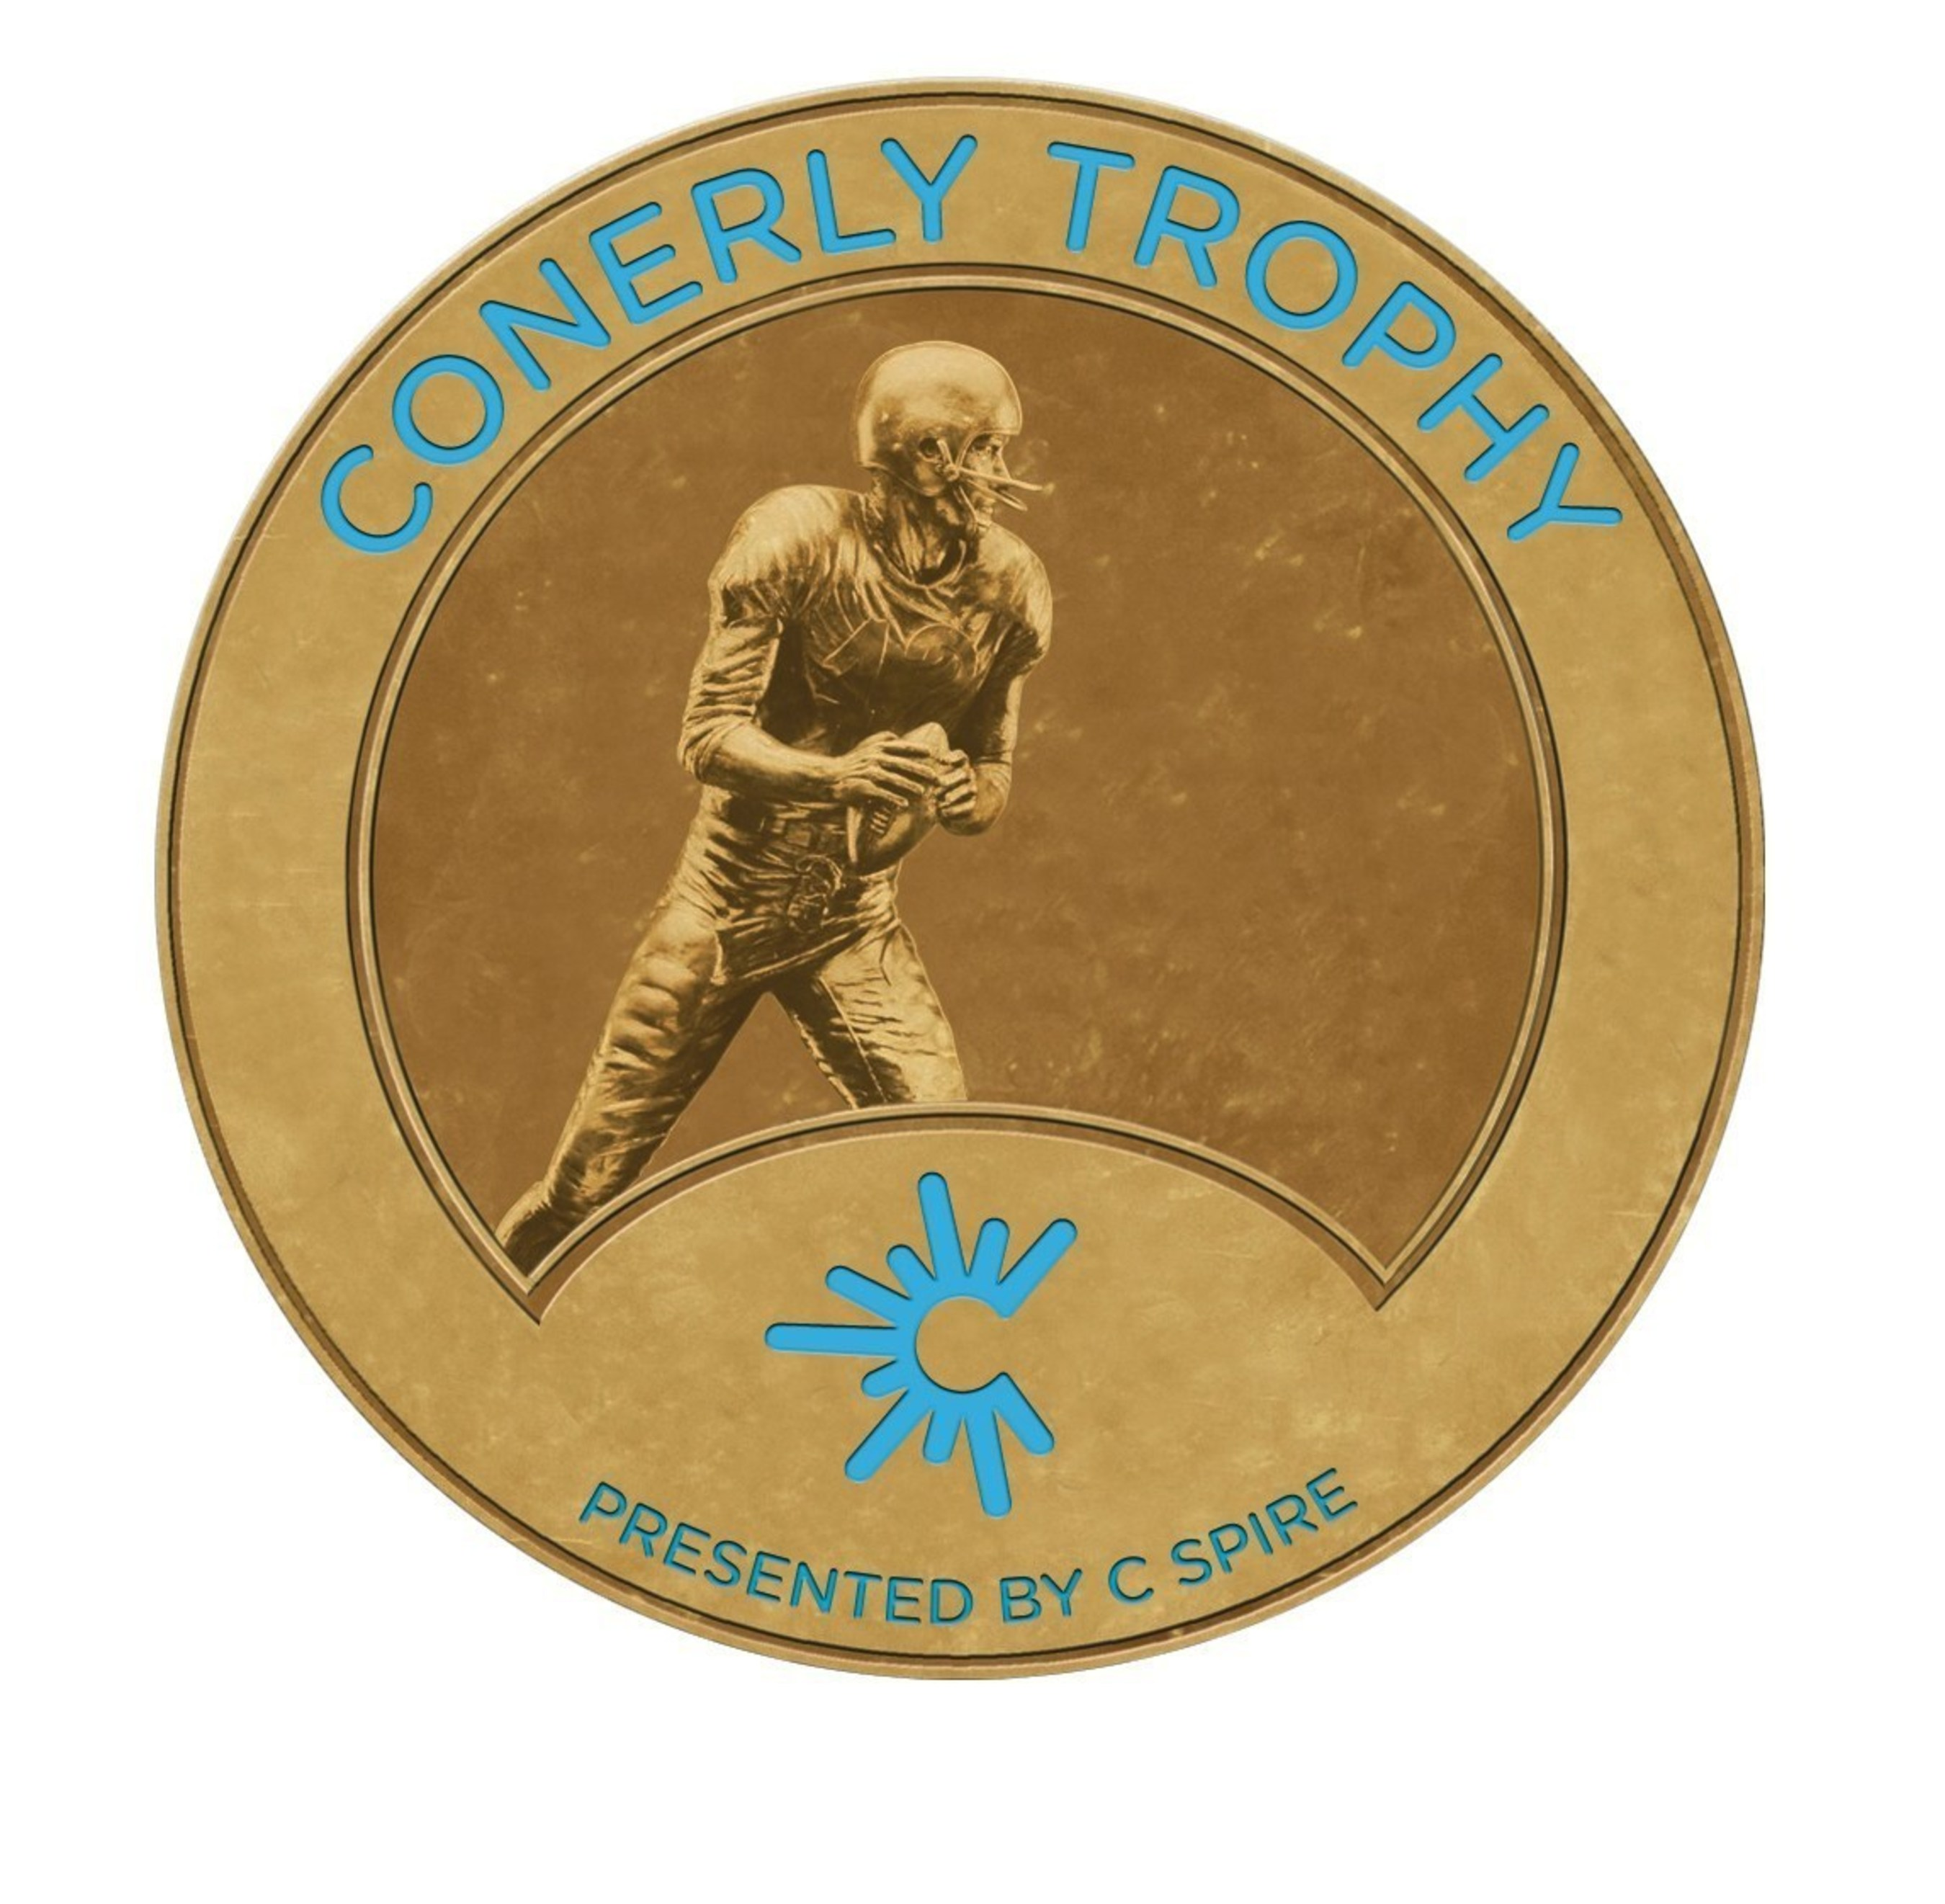 Mississippi fans will get to help decide who is the best college football player in the Magnolia state as part of the 2016 C Spire Conerly Trophy program.  Fan voting begins today at www.csopavoting.com.